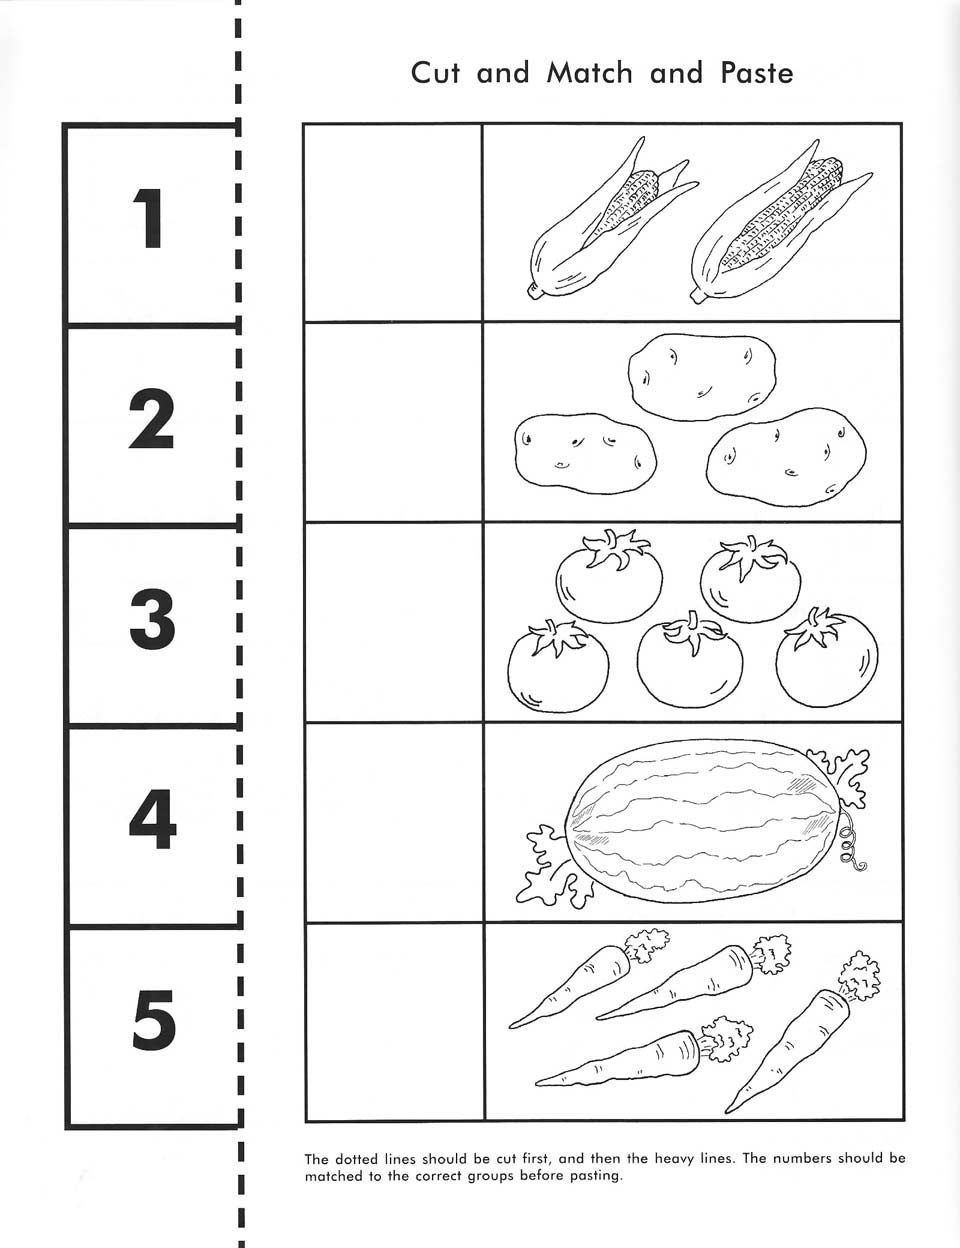 Cut, Count, Match And Paste / Free Printable | Pre-K Math - Free Printable Cut And Paste Worksheets For Preschoolers